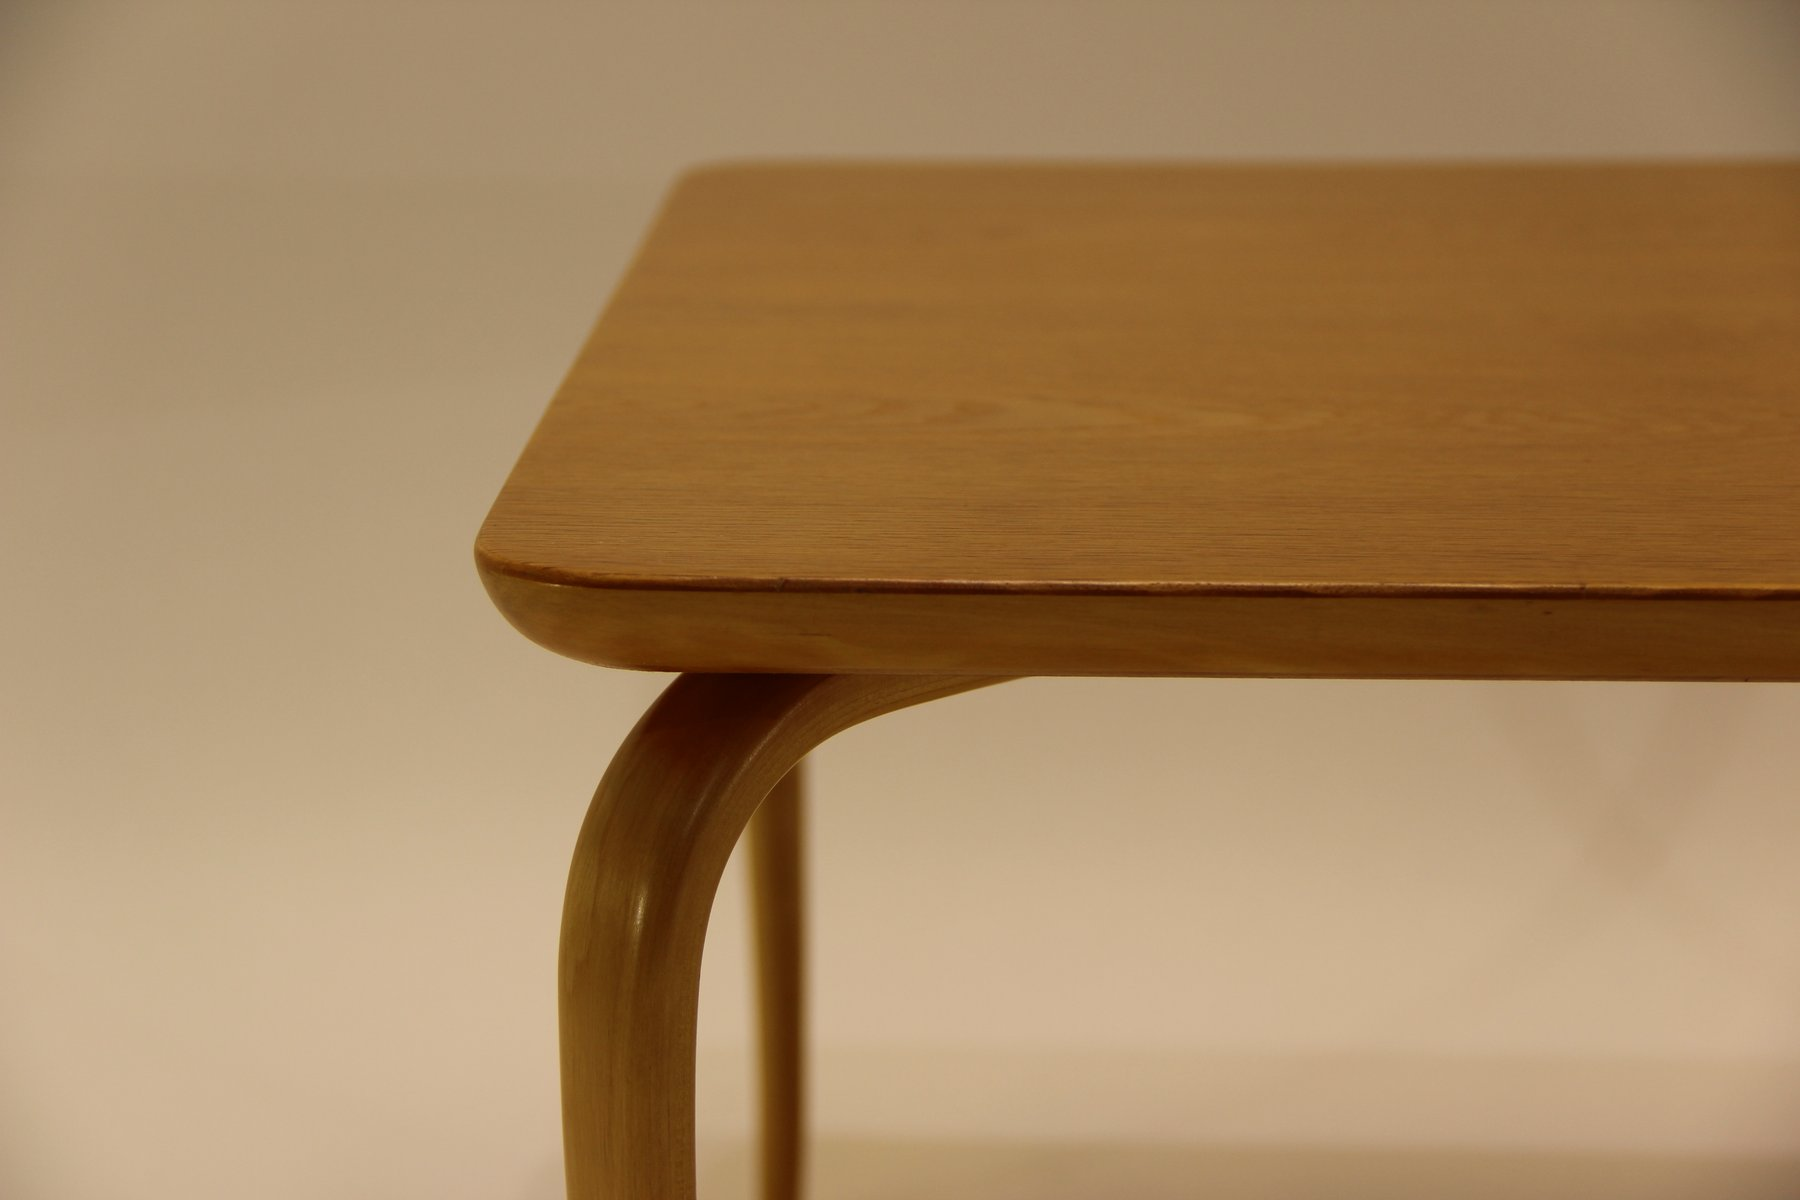 Vintage Annika Oak Beech Coffee Table By Bruno Mathsson For Karl Mathsson For Sale At Pamono